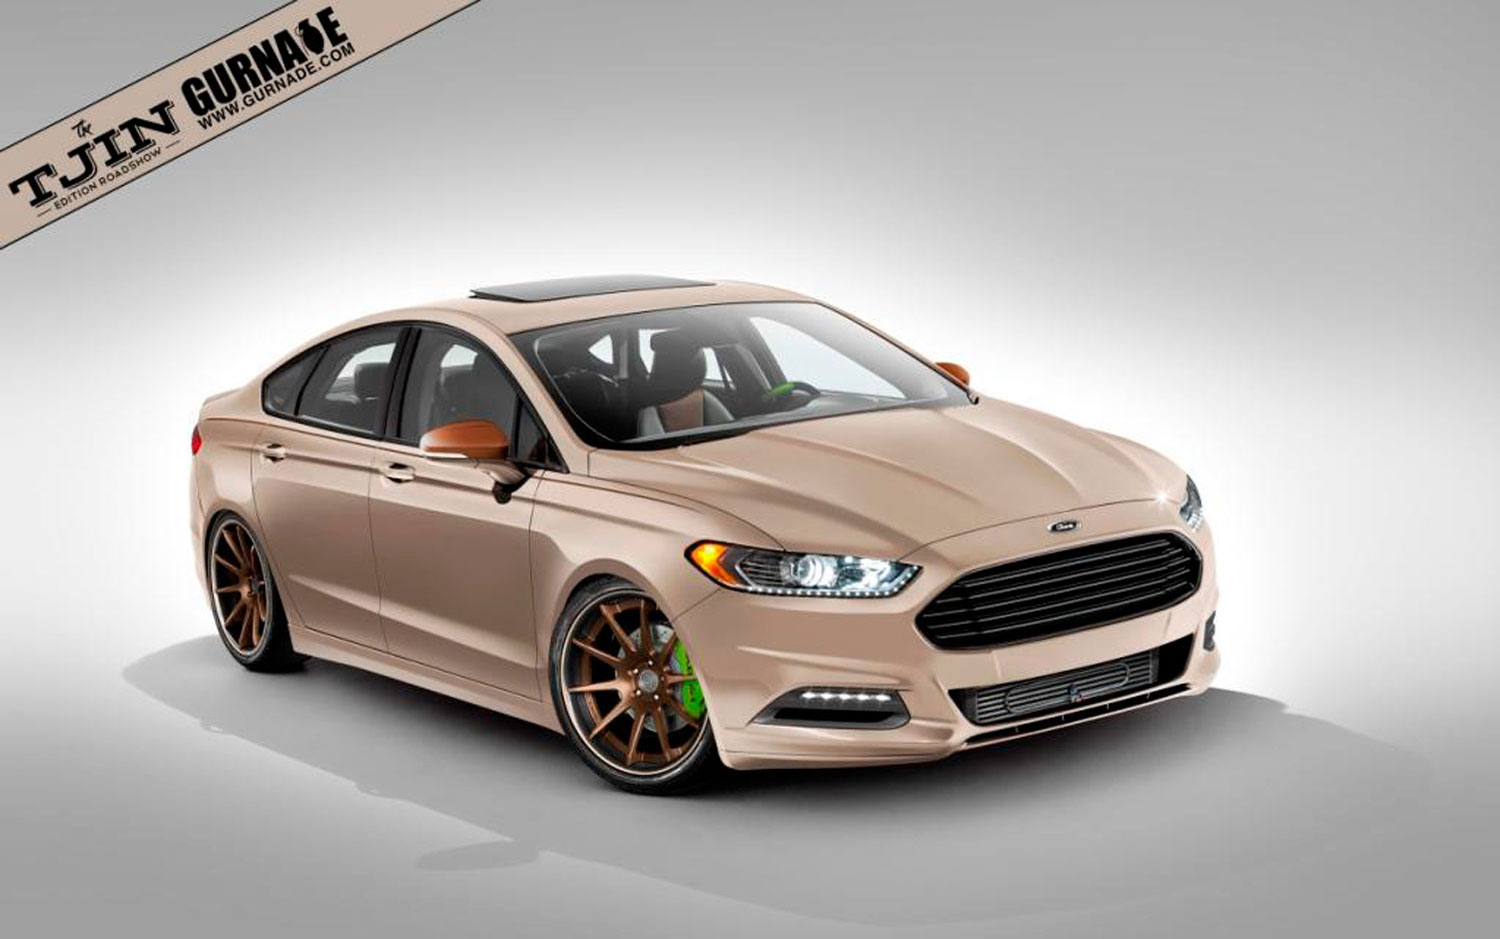 Cars Model 2013 2014 Ford Fusion Photo Of A - Medium